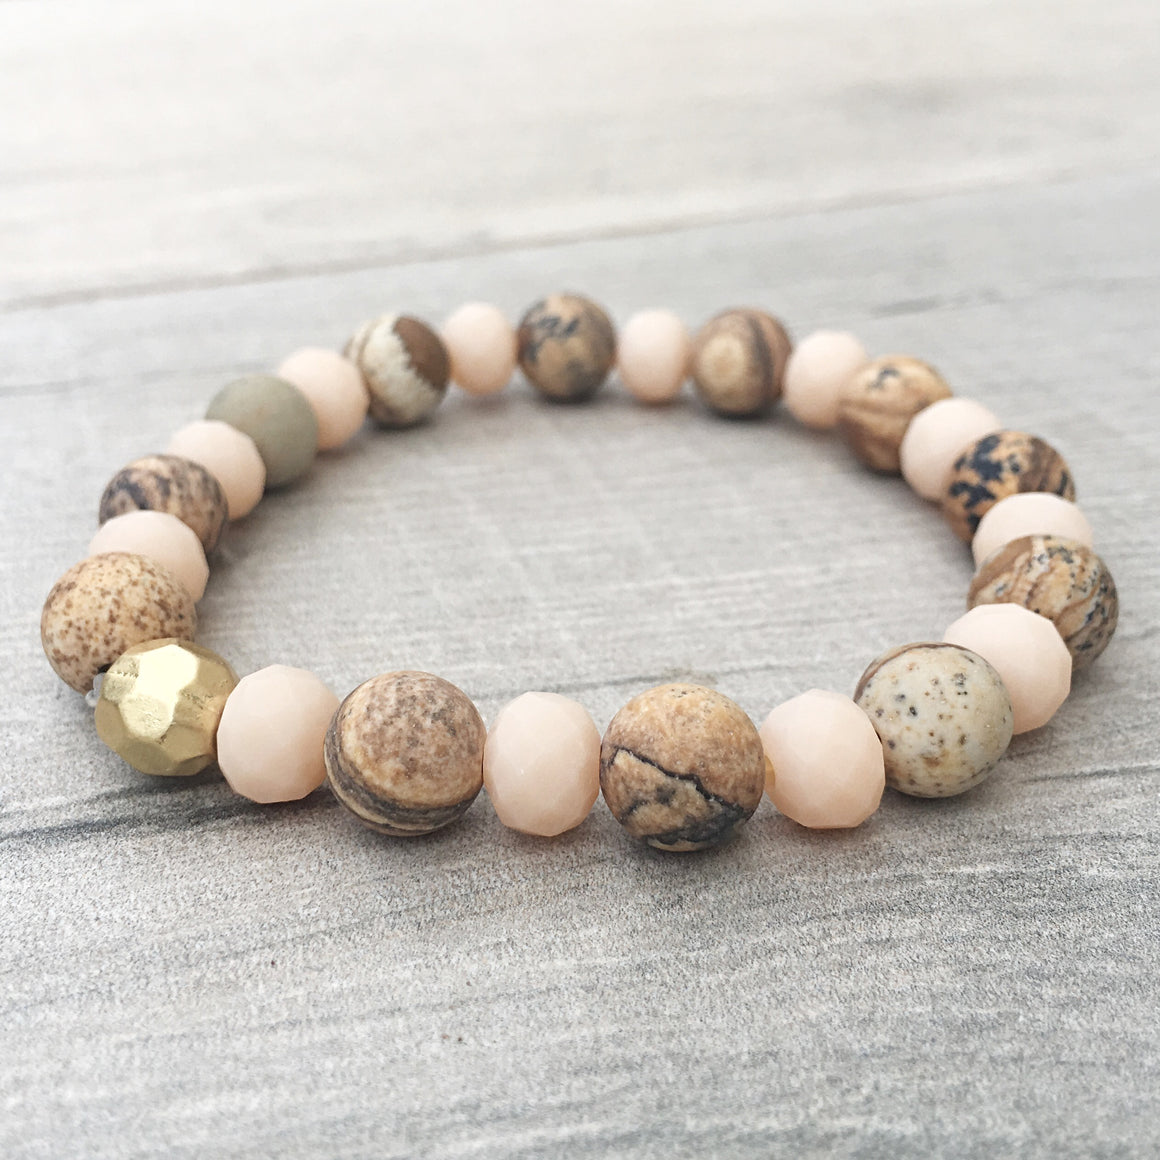 OUTER HEALING BREATHE BEADS